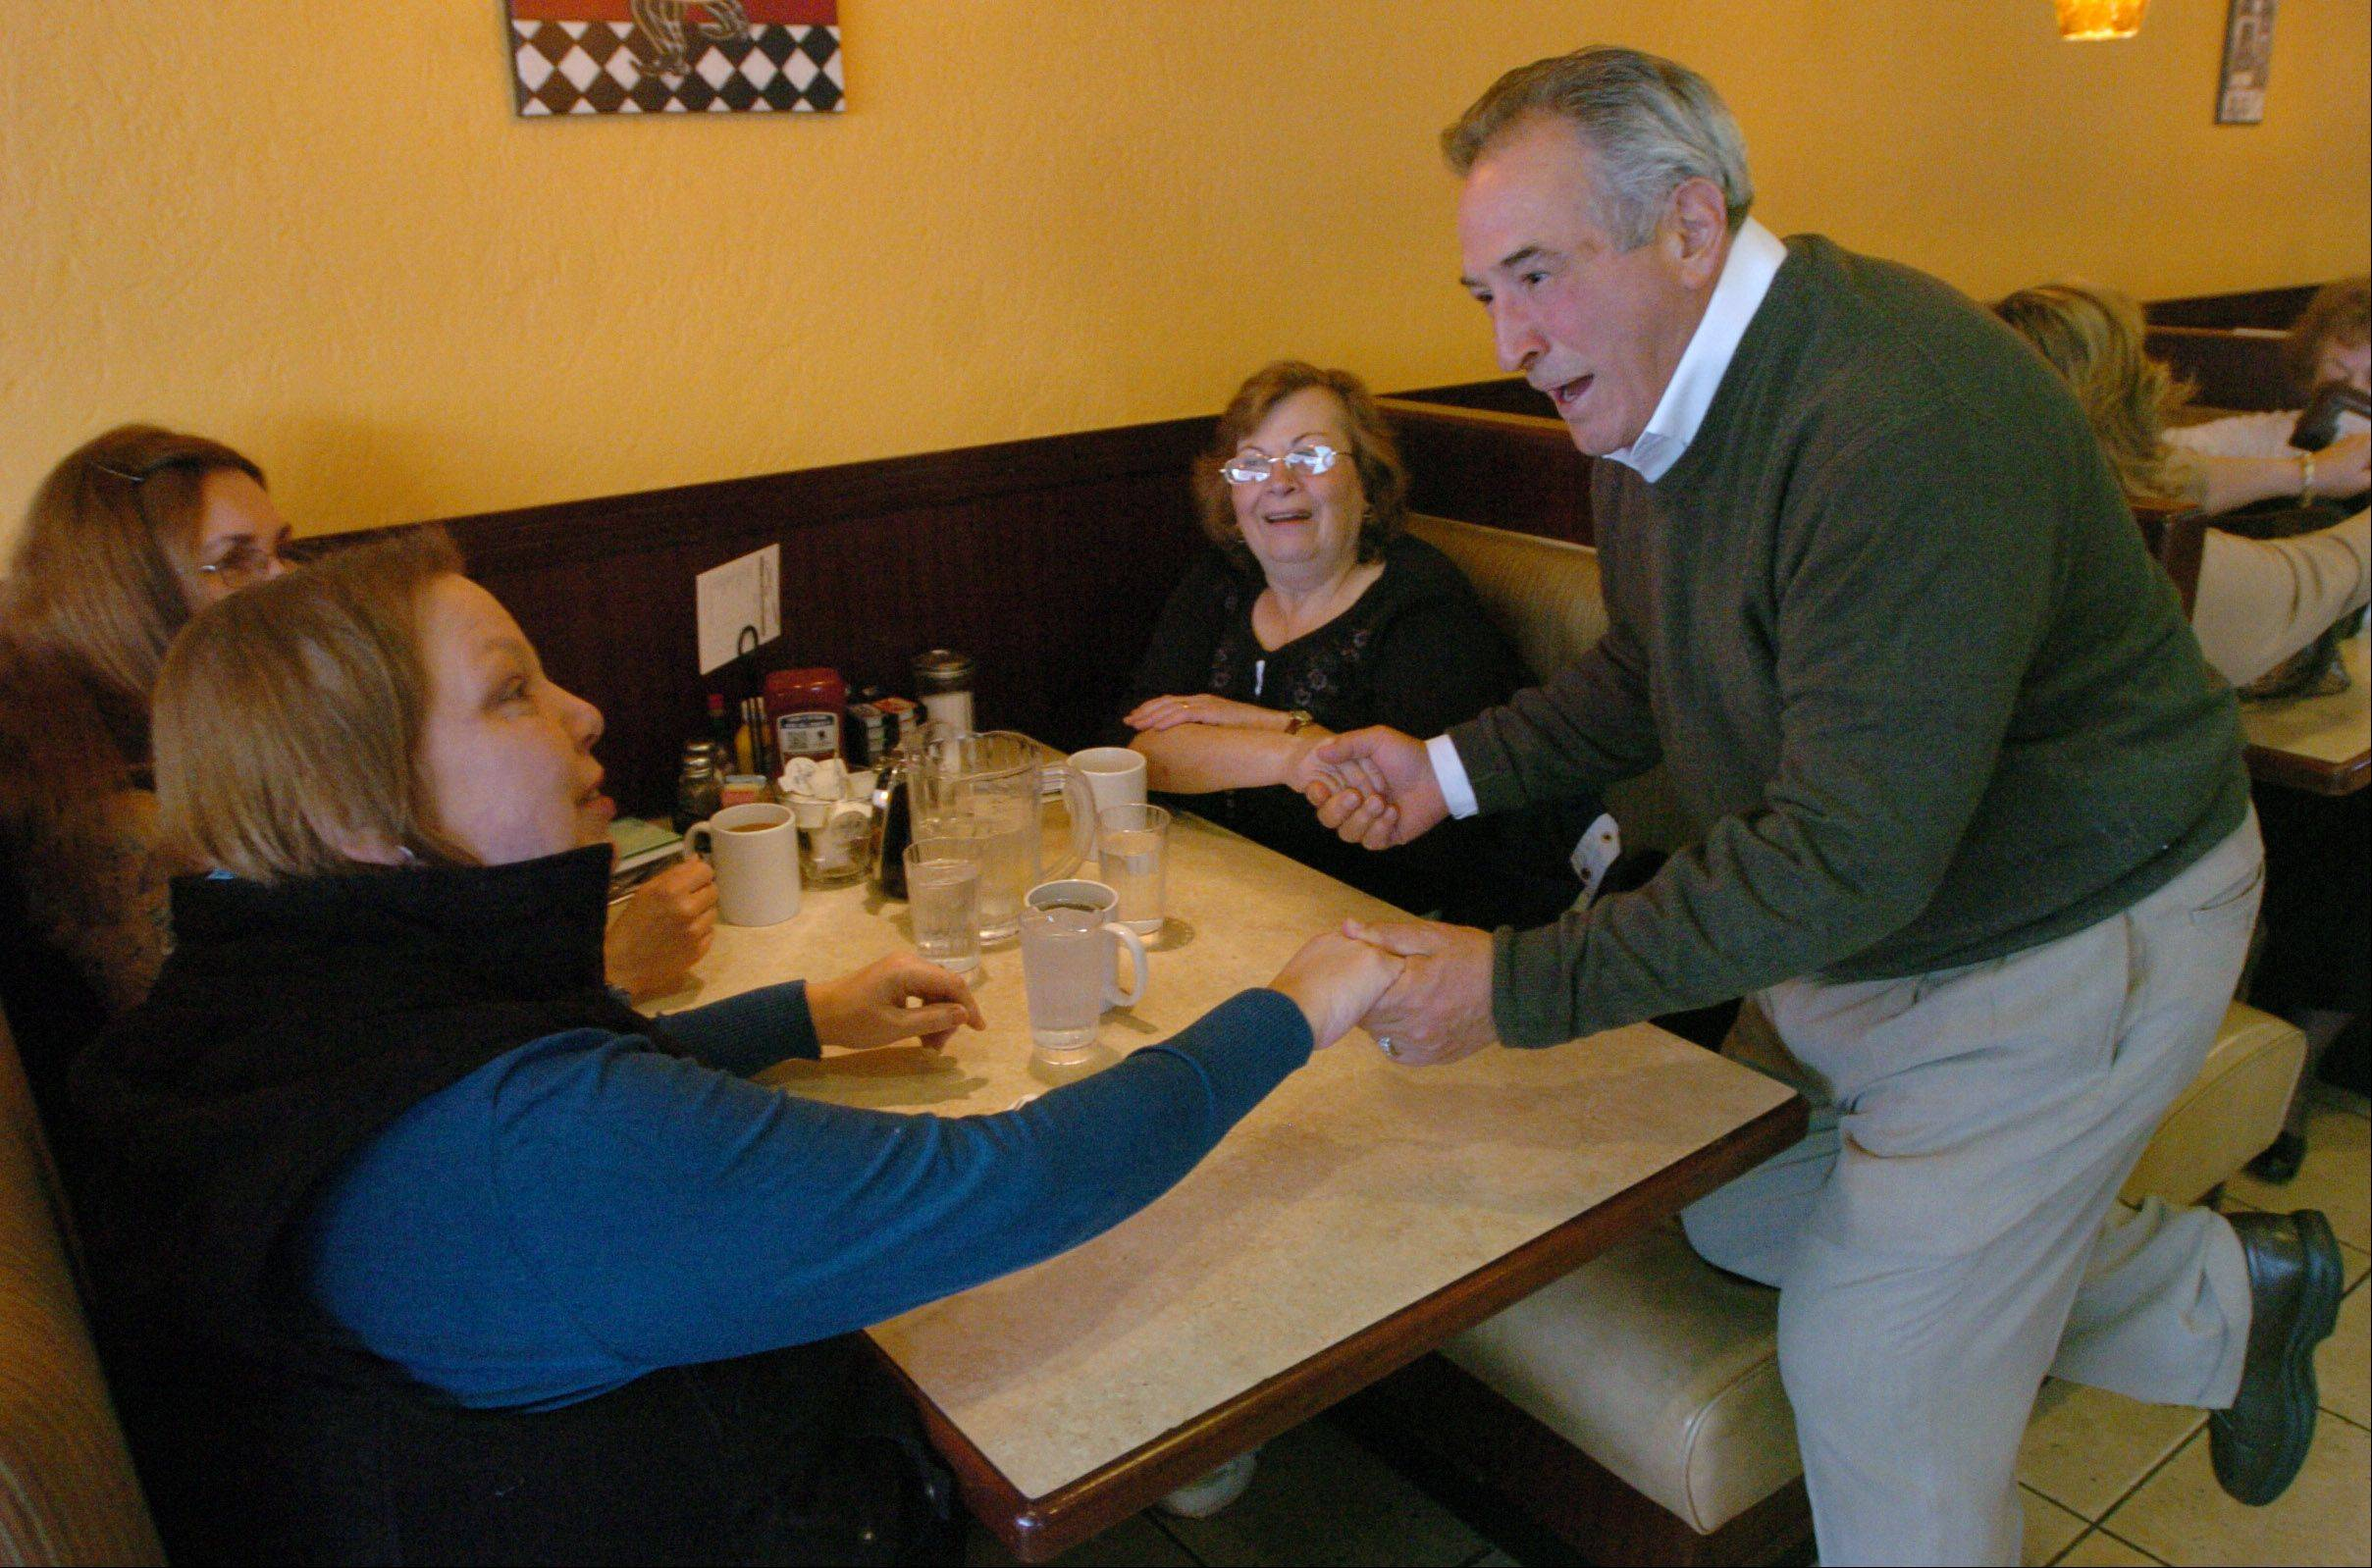 Des Plaines Mayor Marty Moylan visits with, from left, Pat Orlow, Leslie Menarik and Marie Grasser, thanking patrons of the Sugar Bowl restaurant for voting for him to represent the 55th State House District.